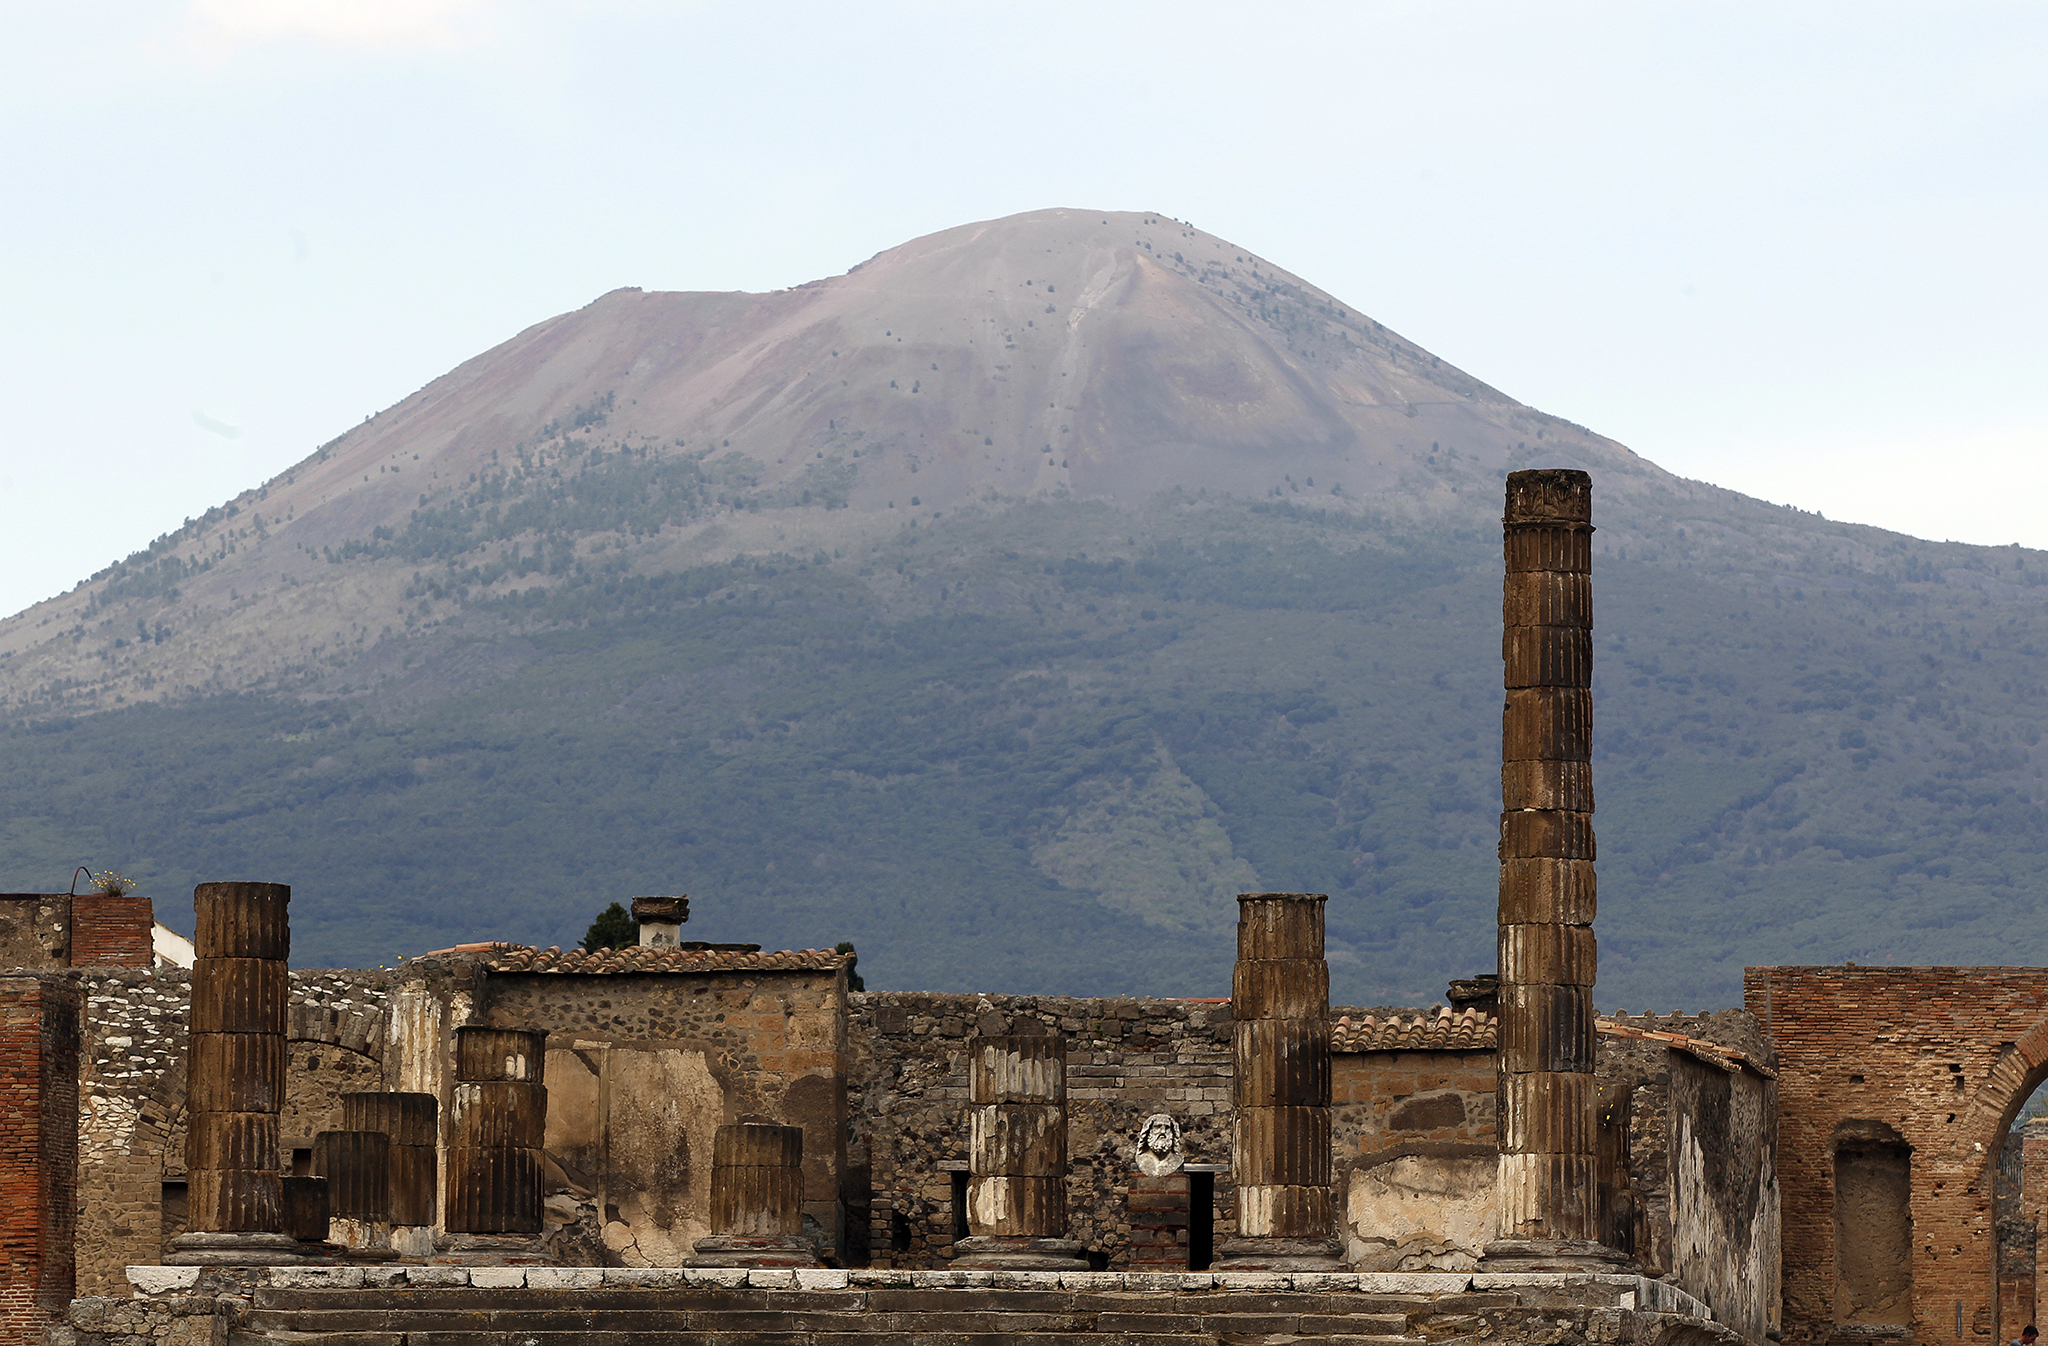 Rescue of Ancient Ruin of Pompeii Follows New Plan 2048x1346